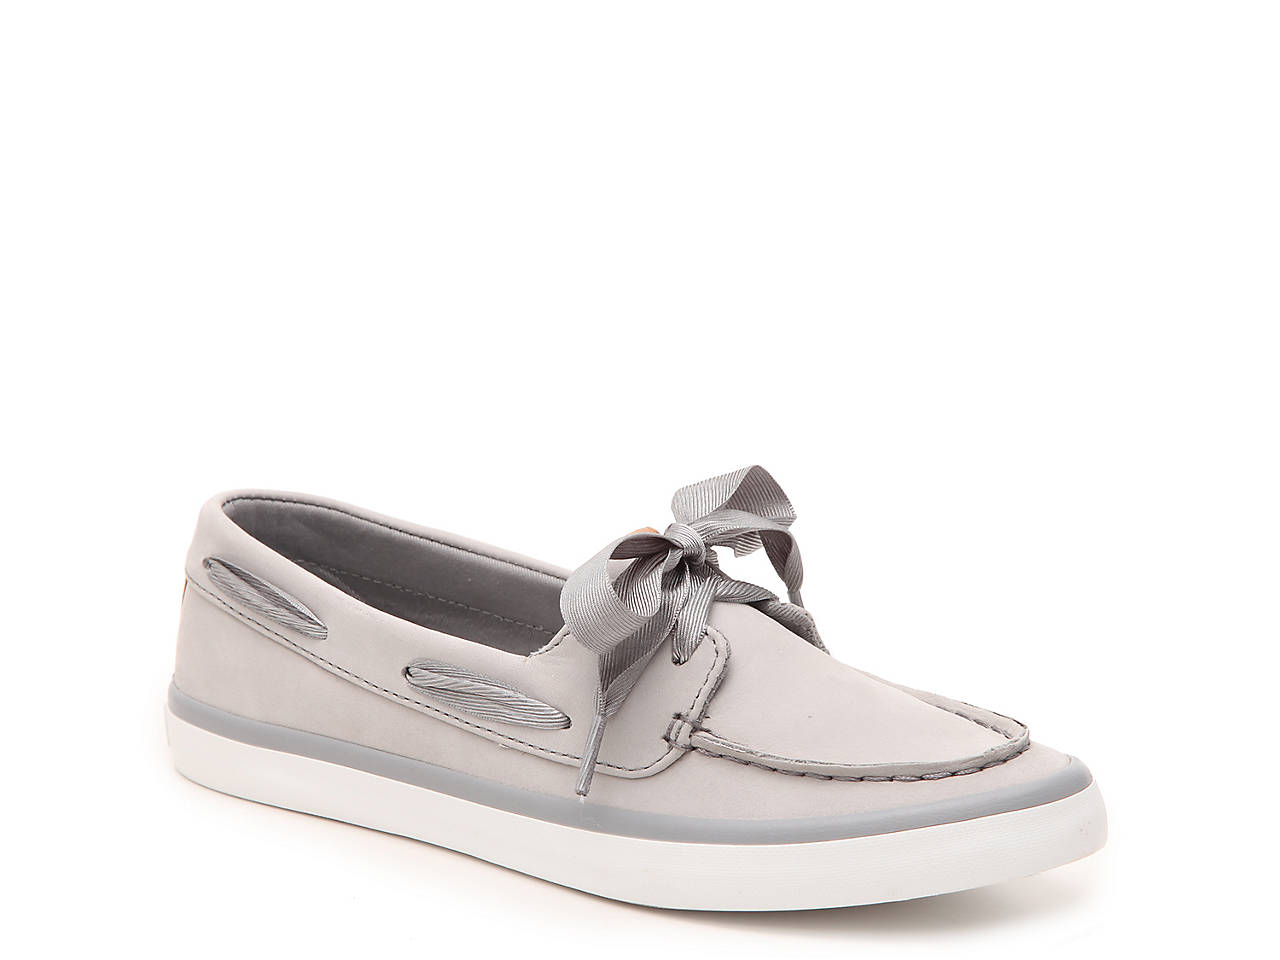 528b89cf2cd Sperry Top-Sider Sailor Boat Shoe Women s Shoes